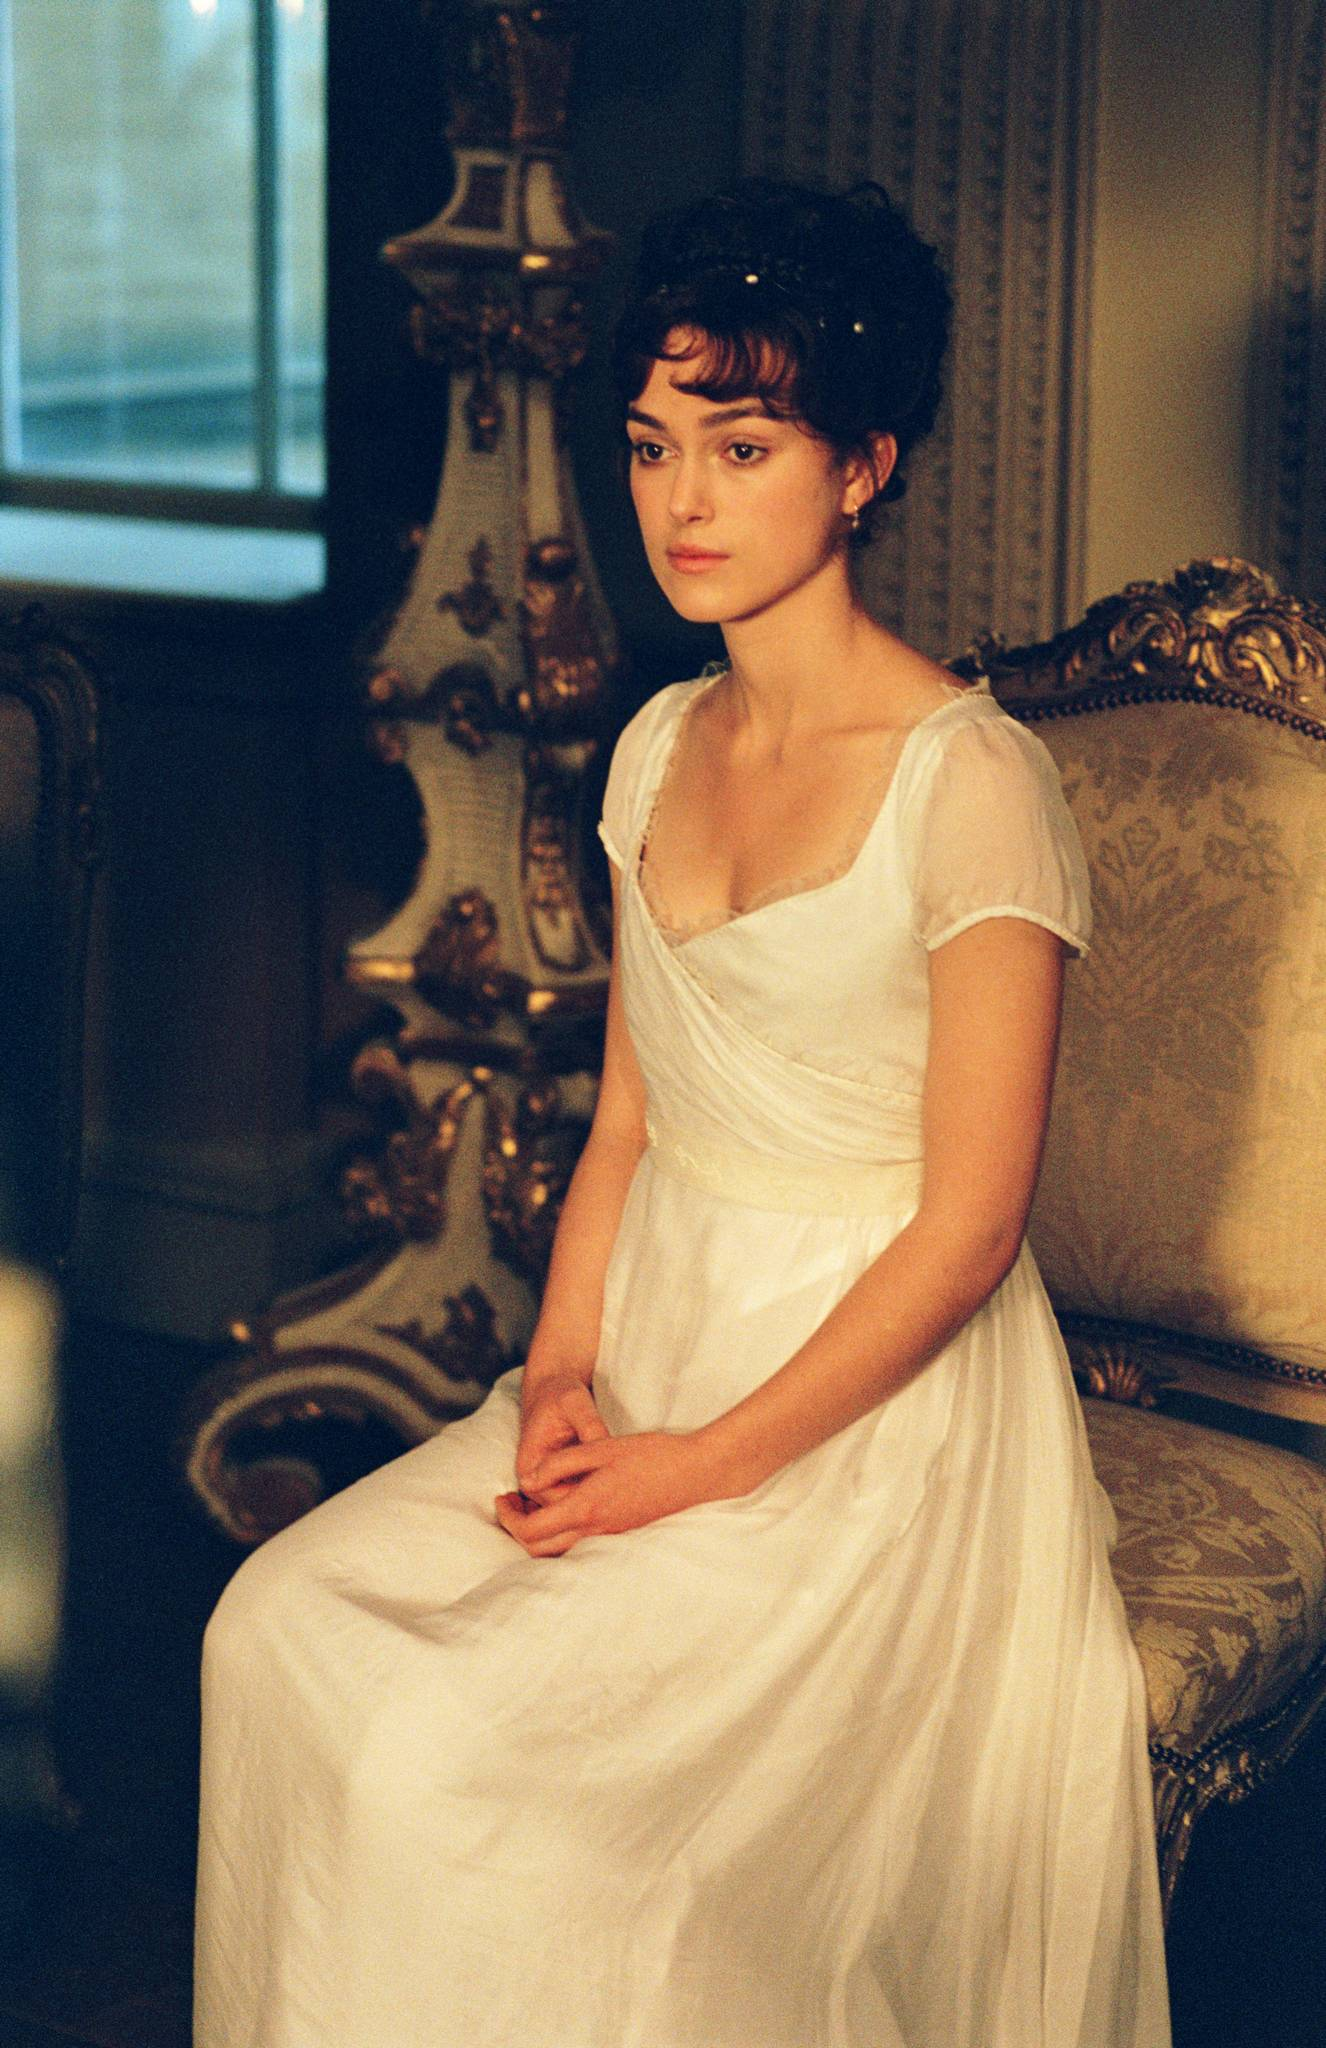 pride prejudice by jamie bennett essay English essays - pride and prejudice mr bennet exhibits the detachment of pride and mrs bennet the total involvement of prejudice&#8221 greenfield.